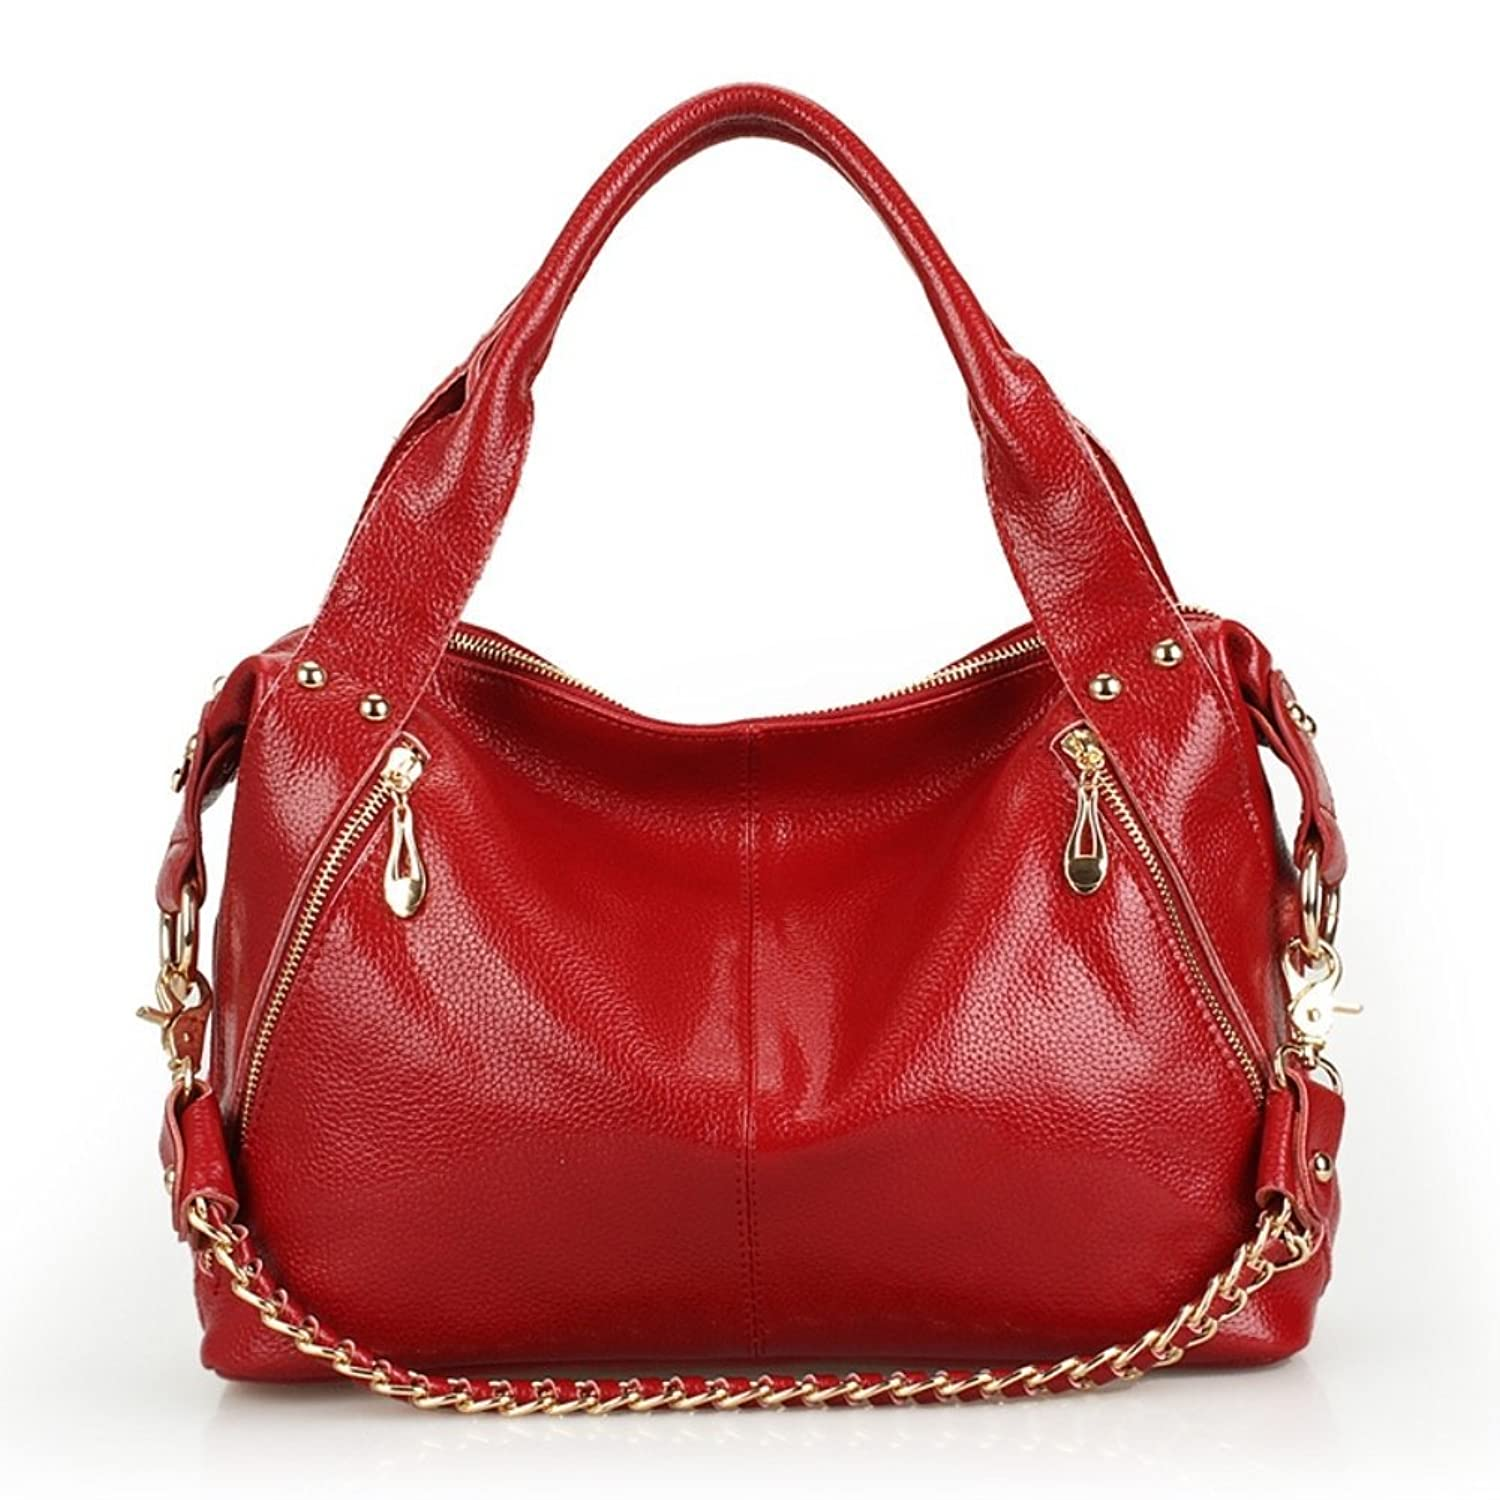 PPSTAR HB700096 Fashion Genuine Leather Europe Women's Handbag,Dumplings Type Dumplings